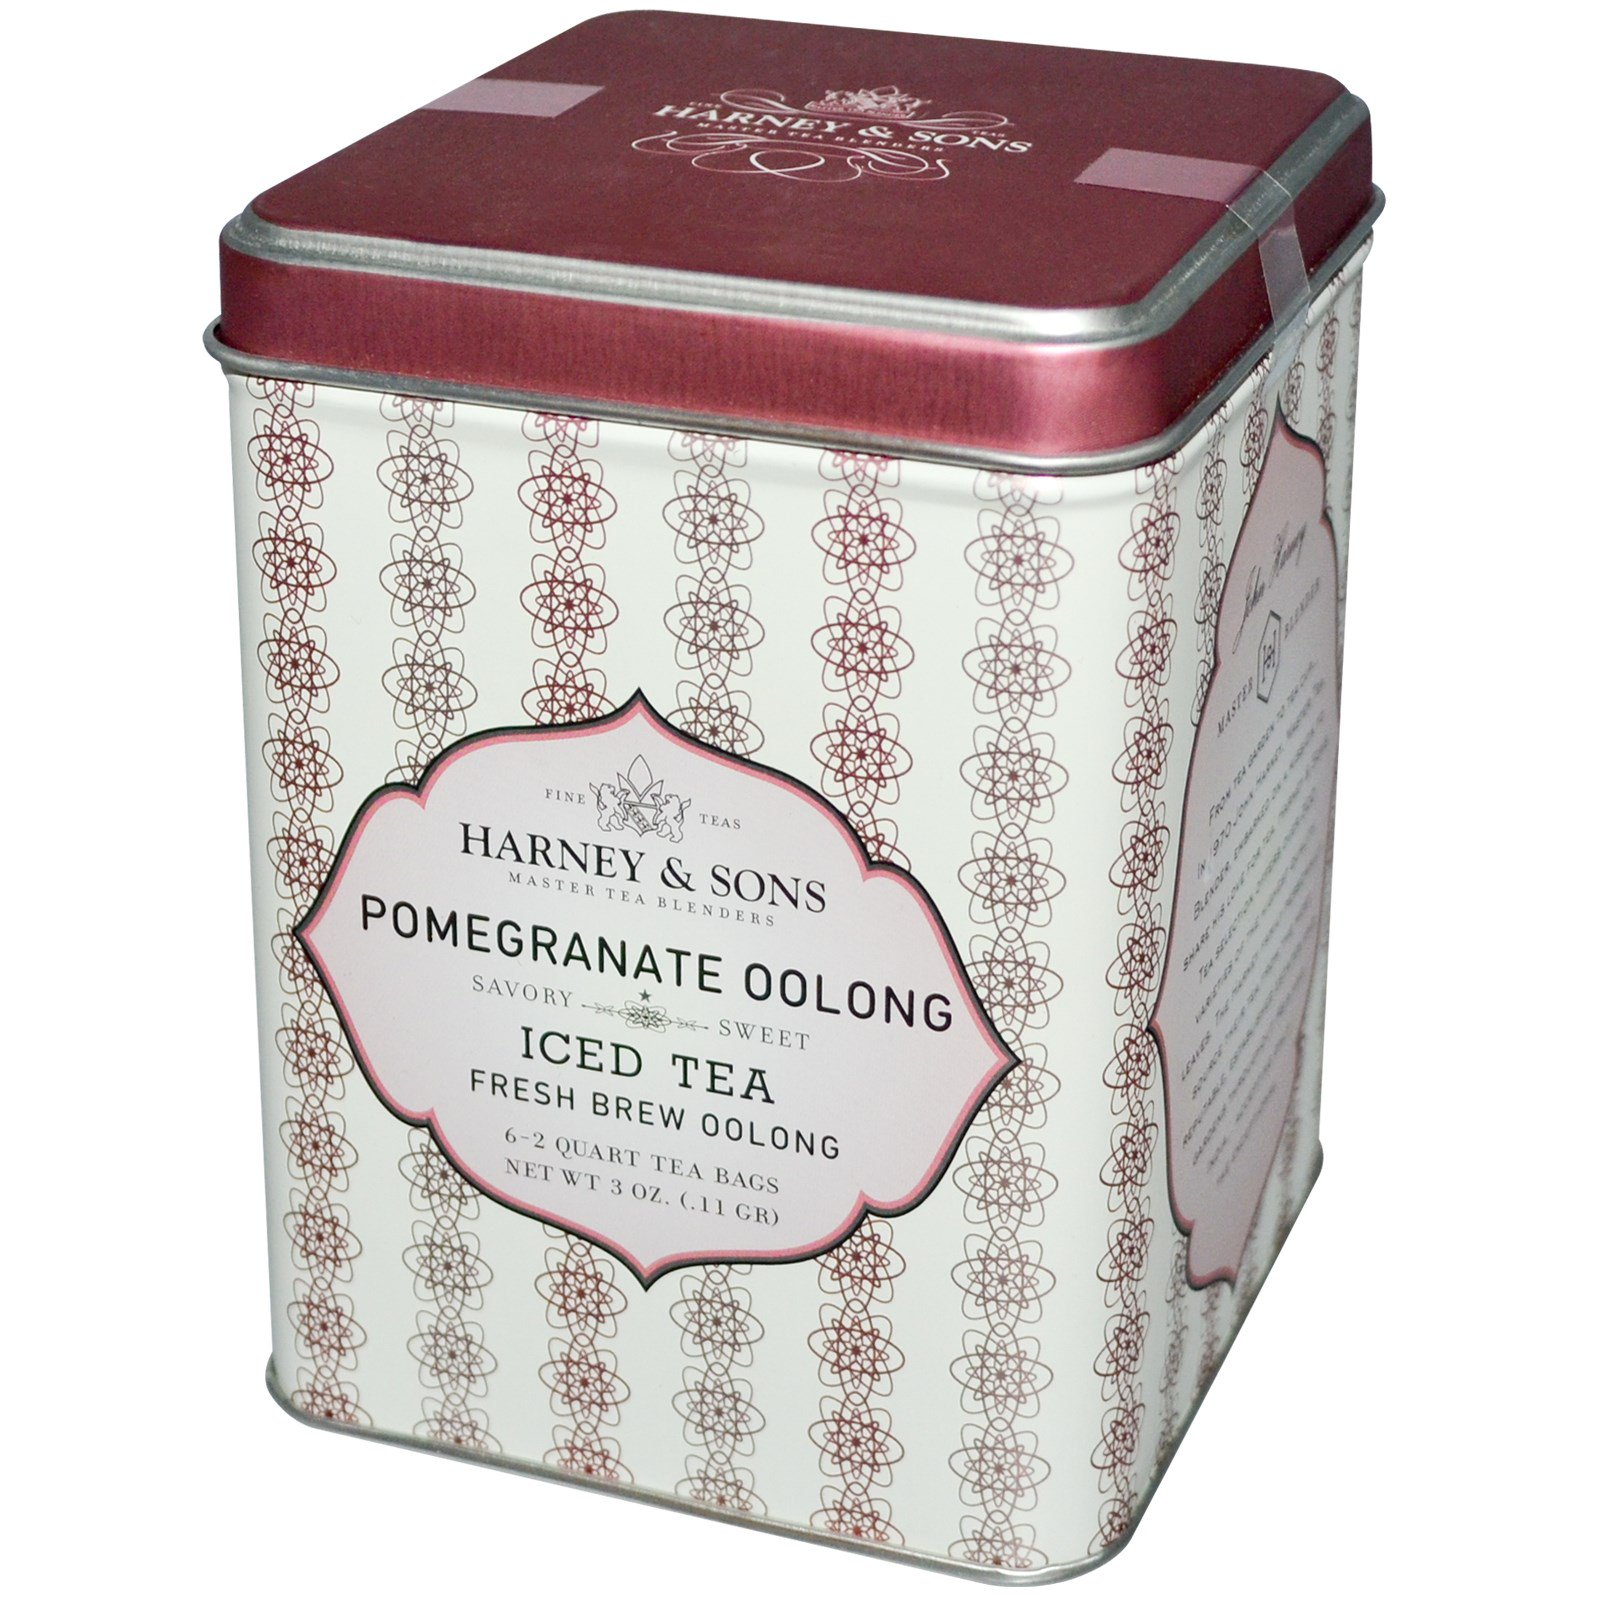 Harney Sons Pomegranate Oolong Iced Tea 6 2 Quart Bags